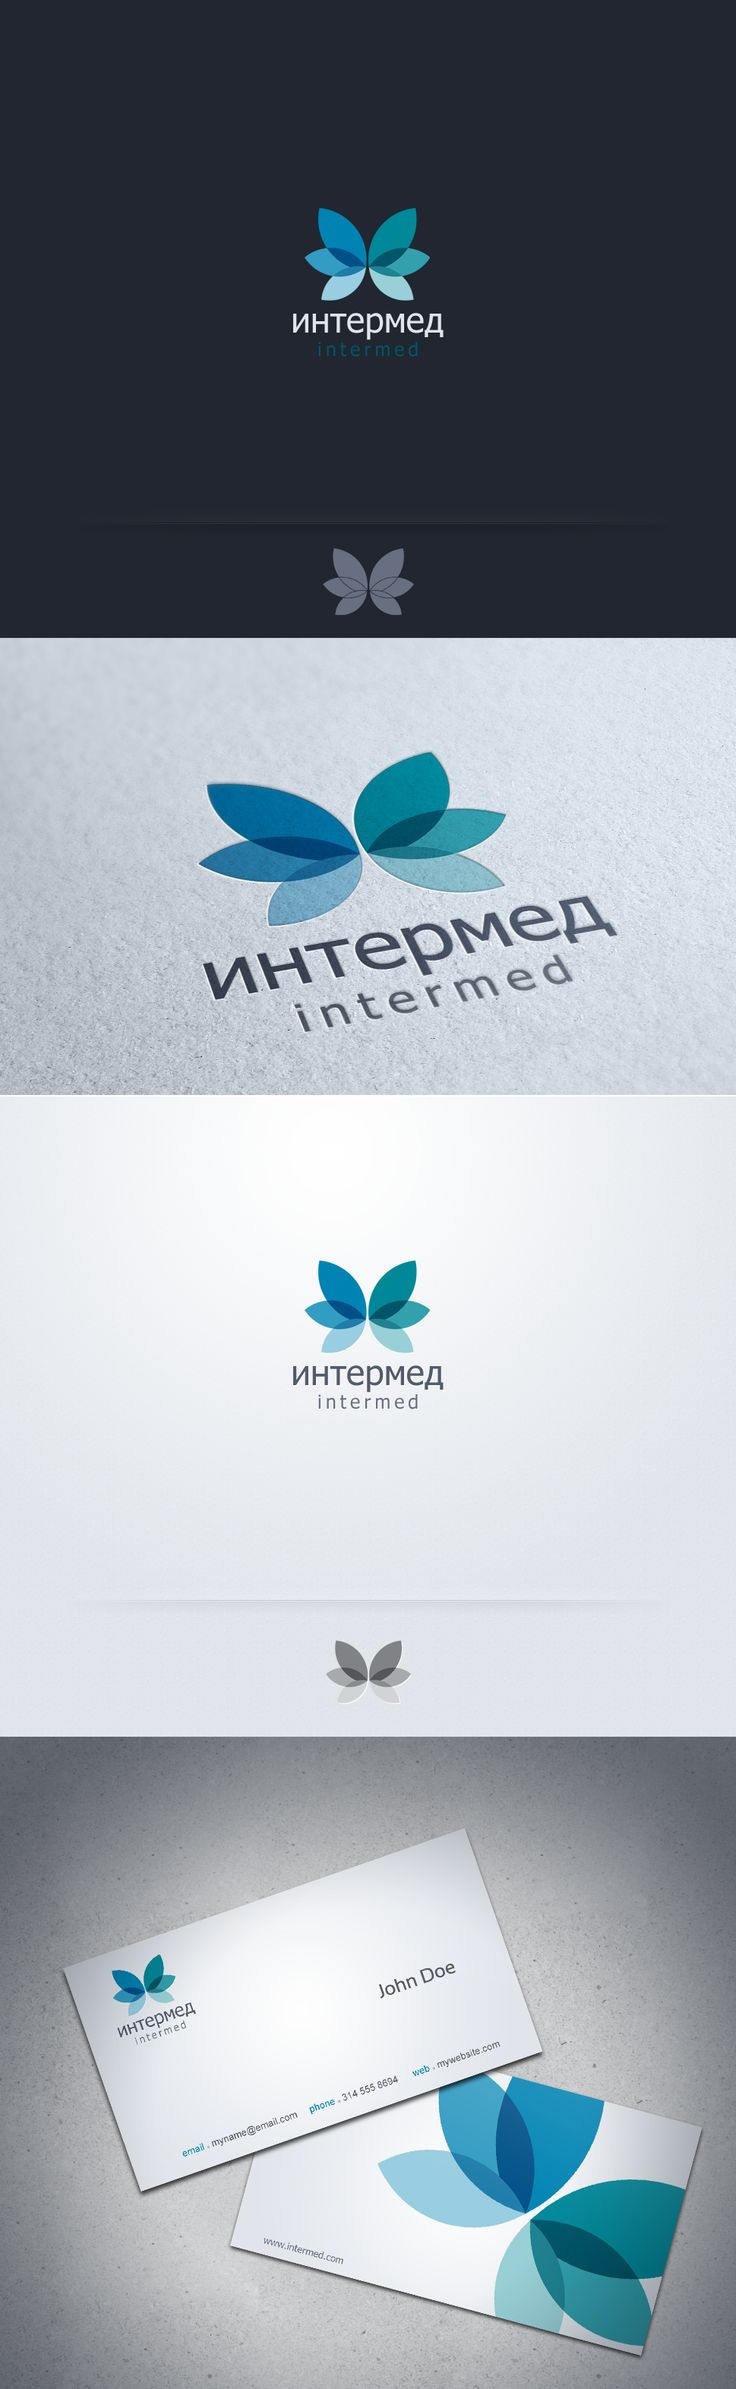 InterMed logo by cici0